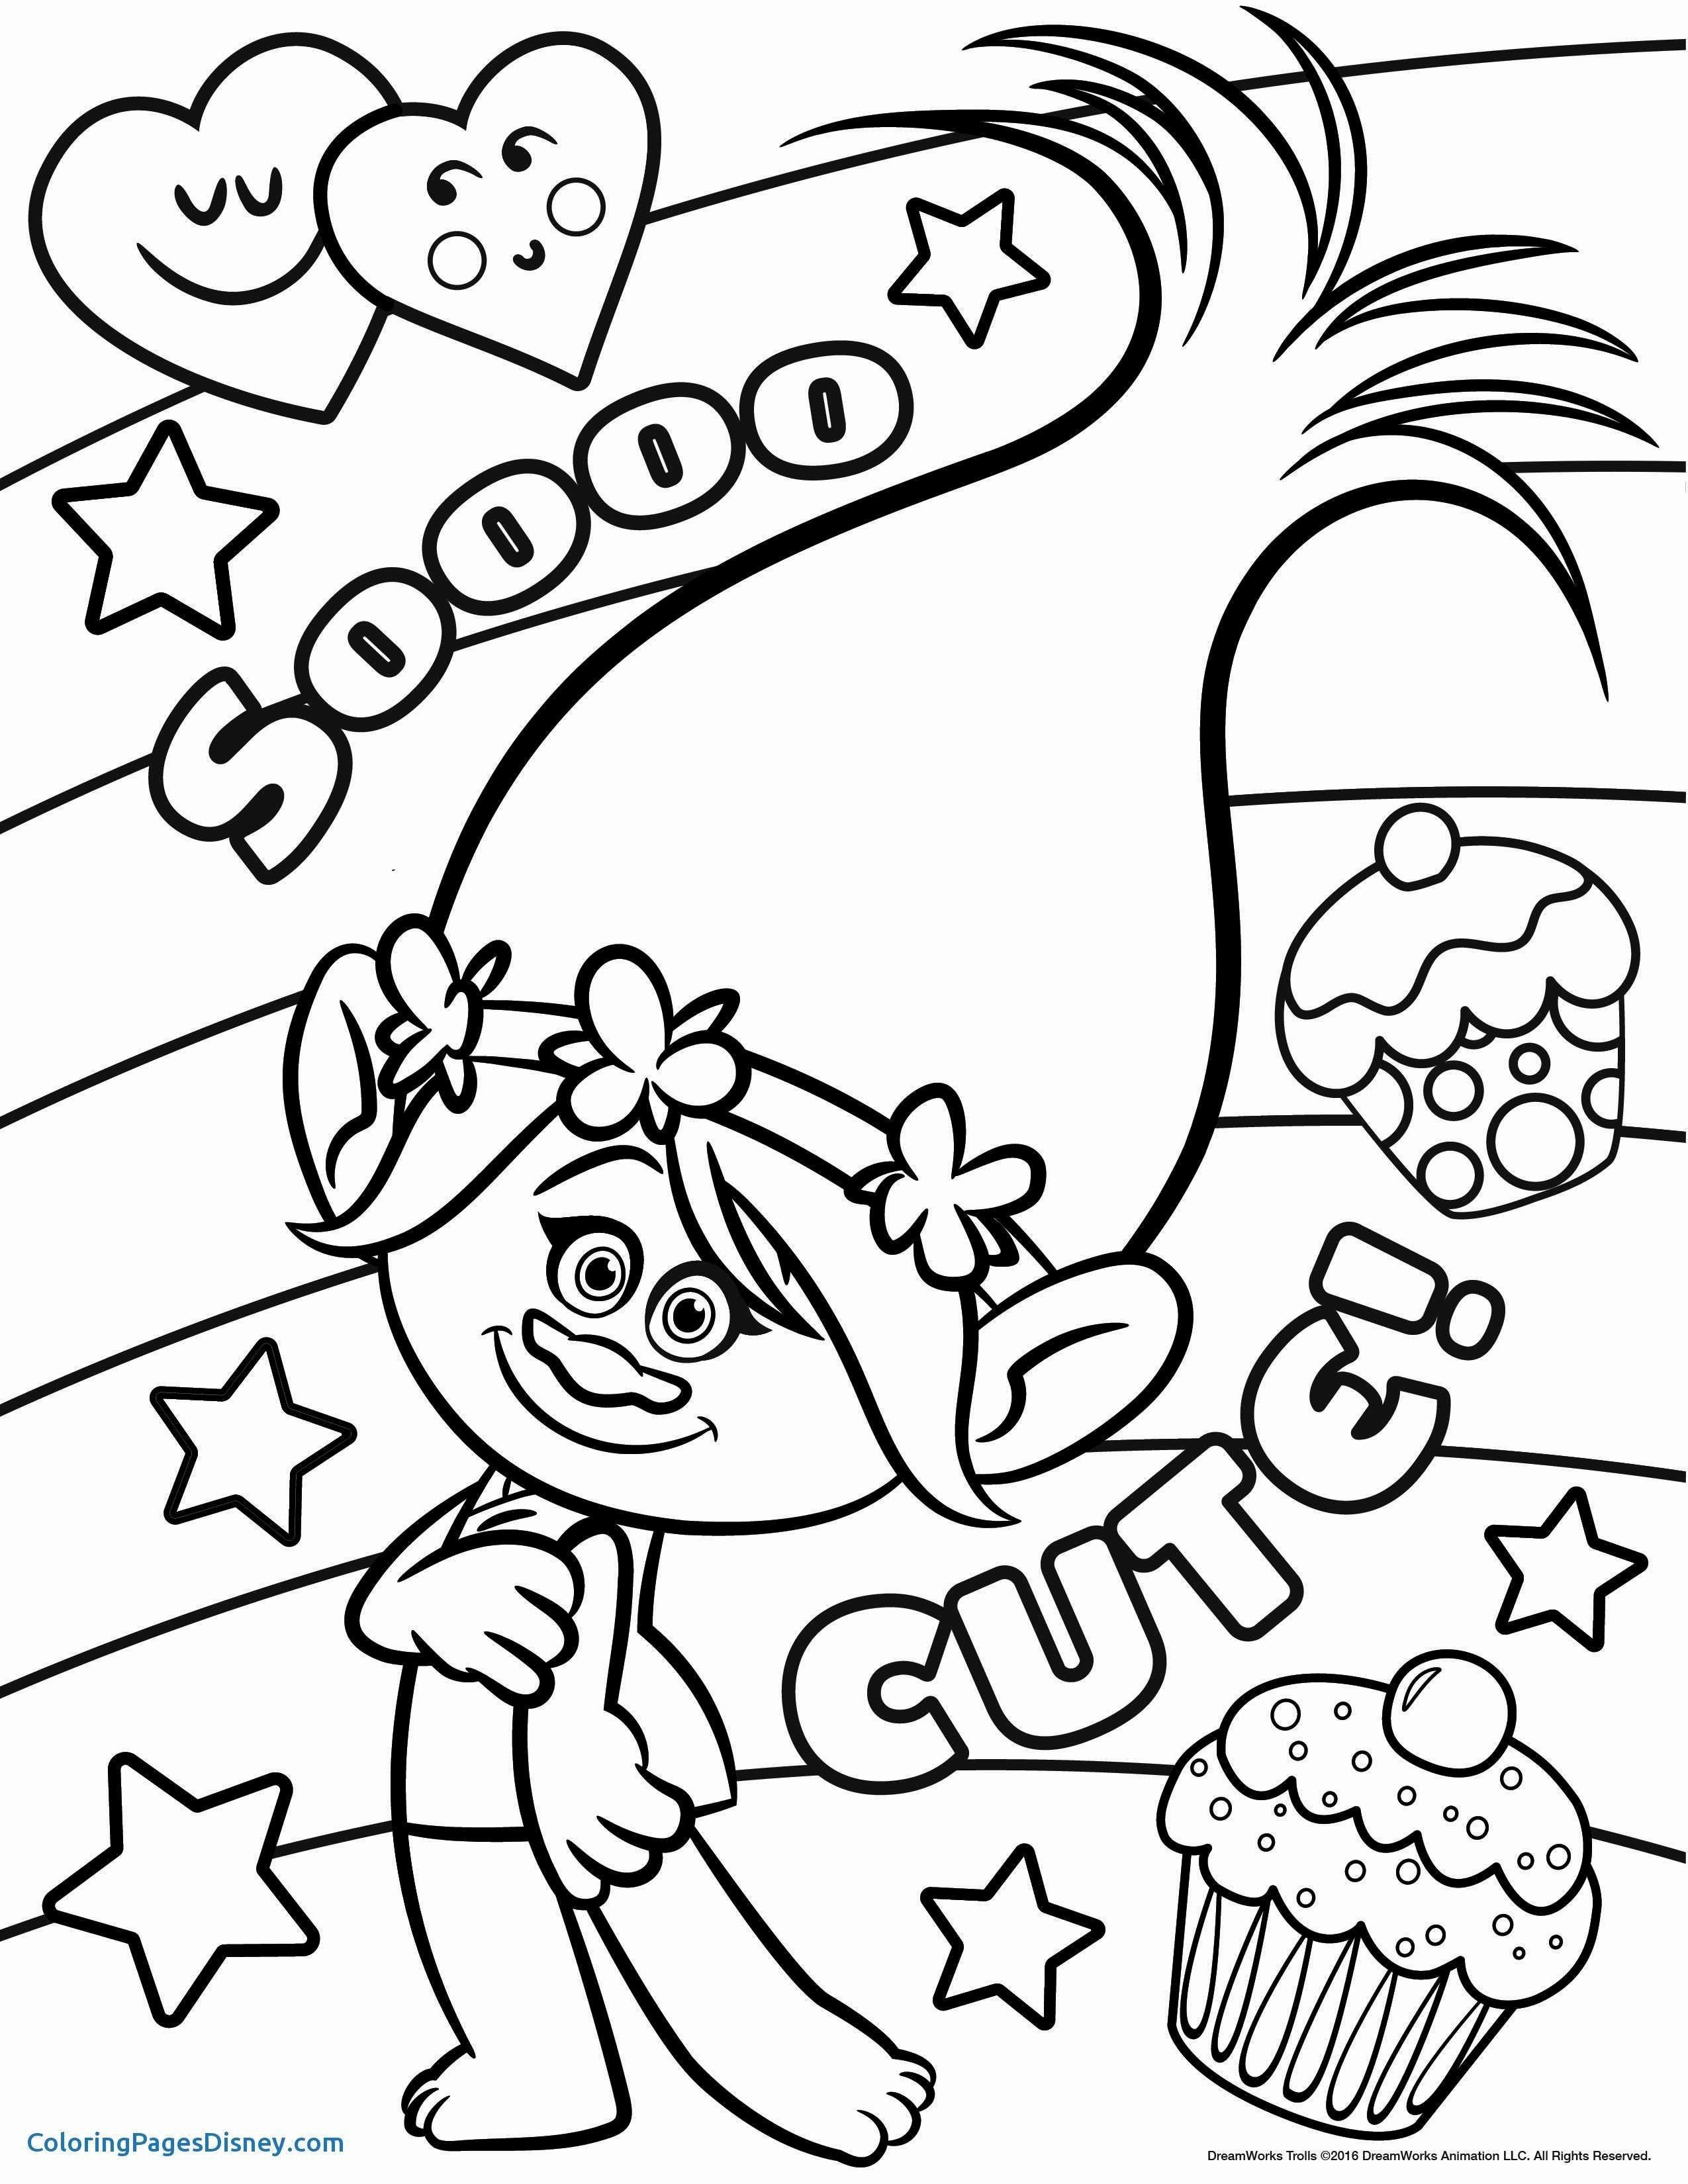 Pin On Popular Coloring Page Collections